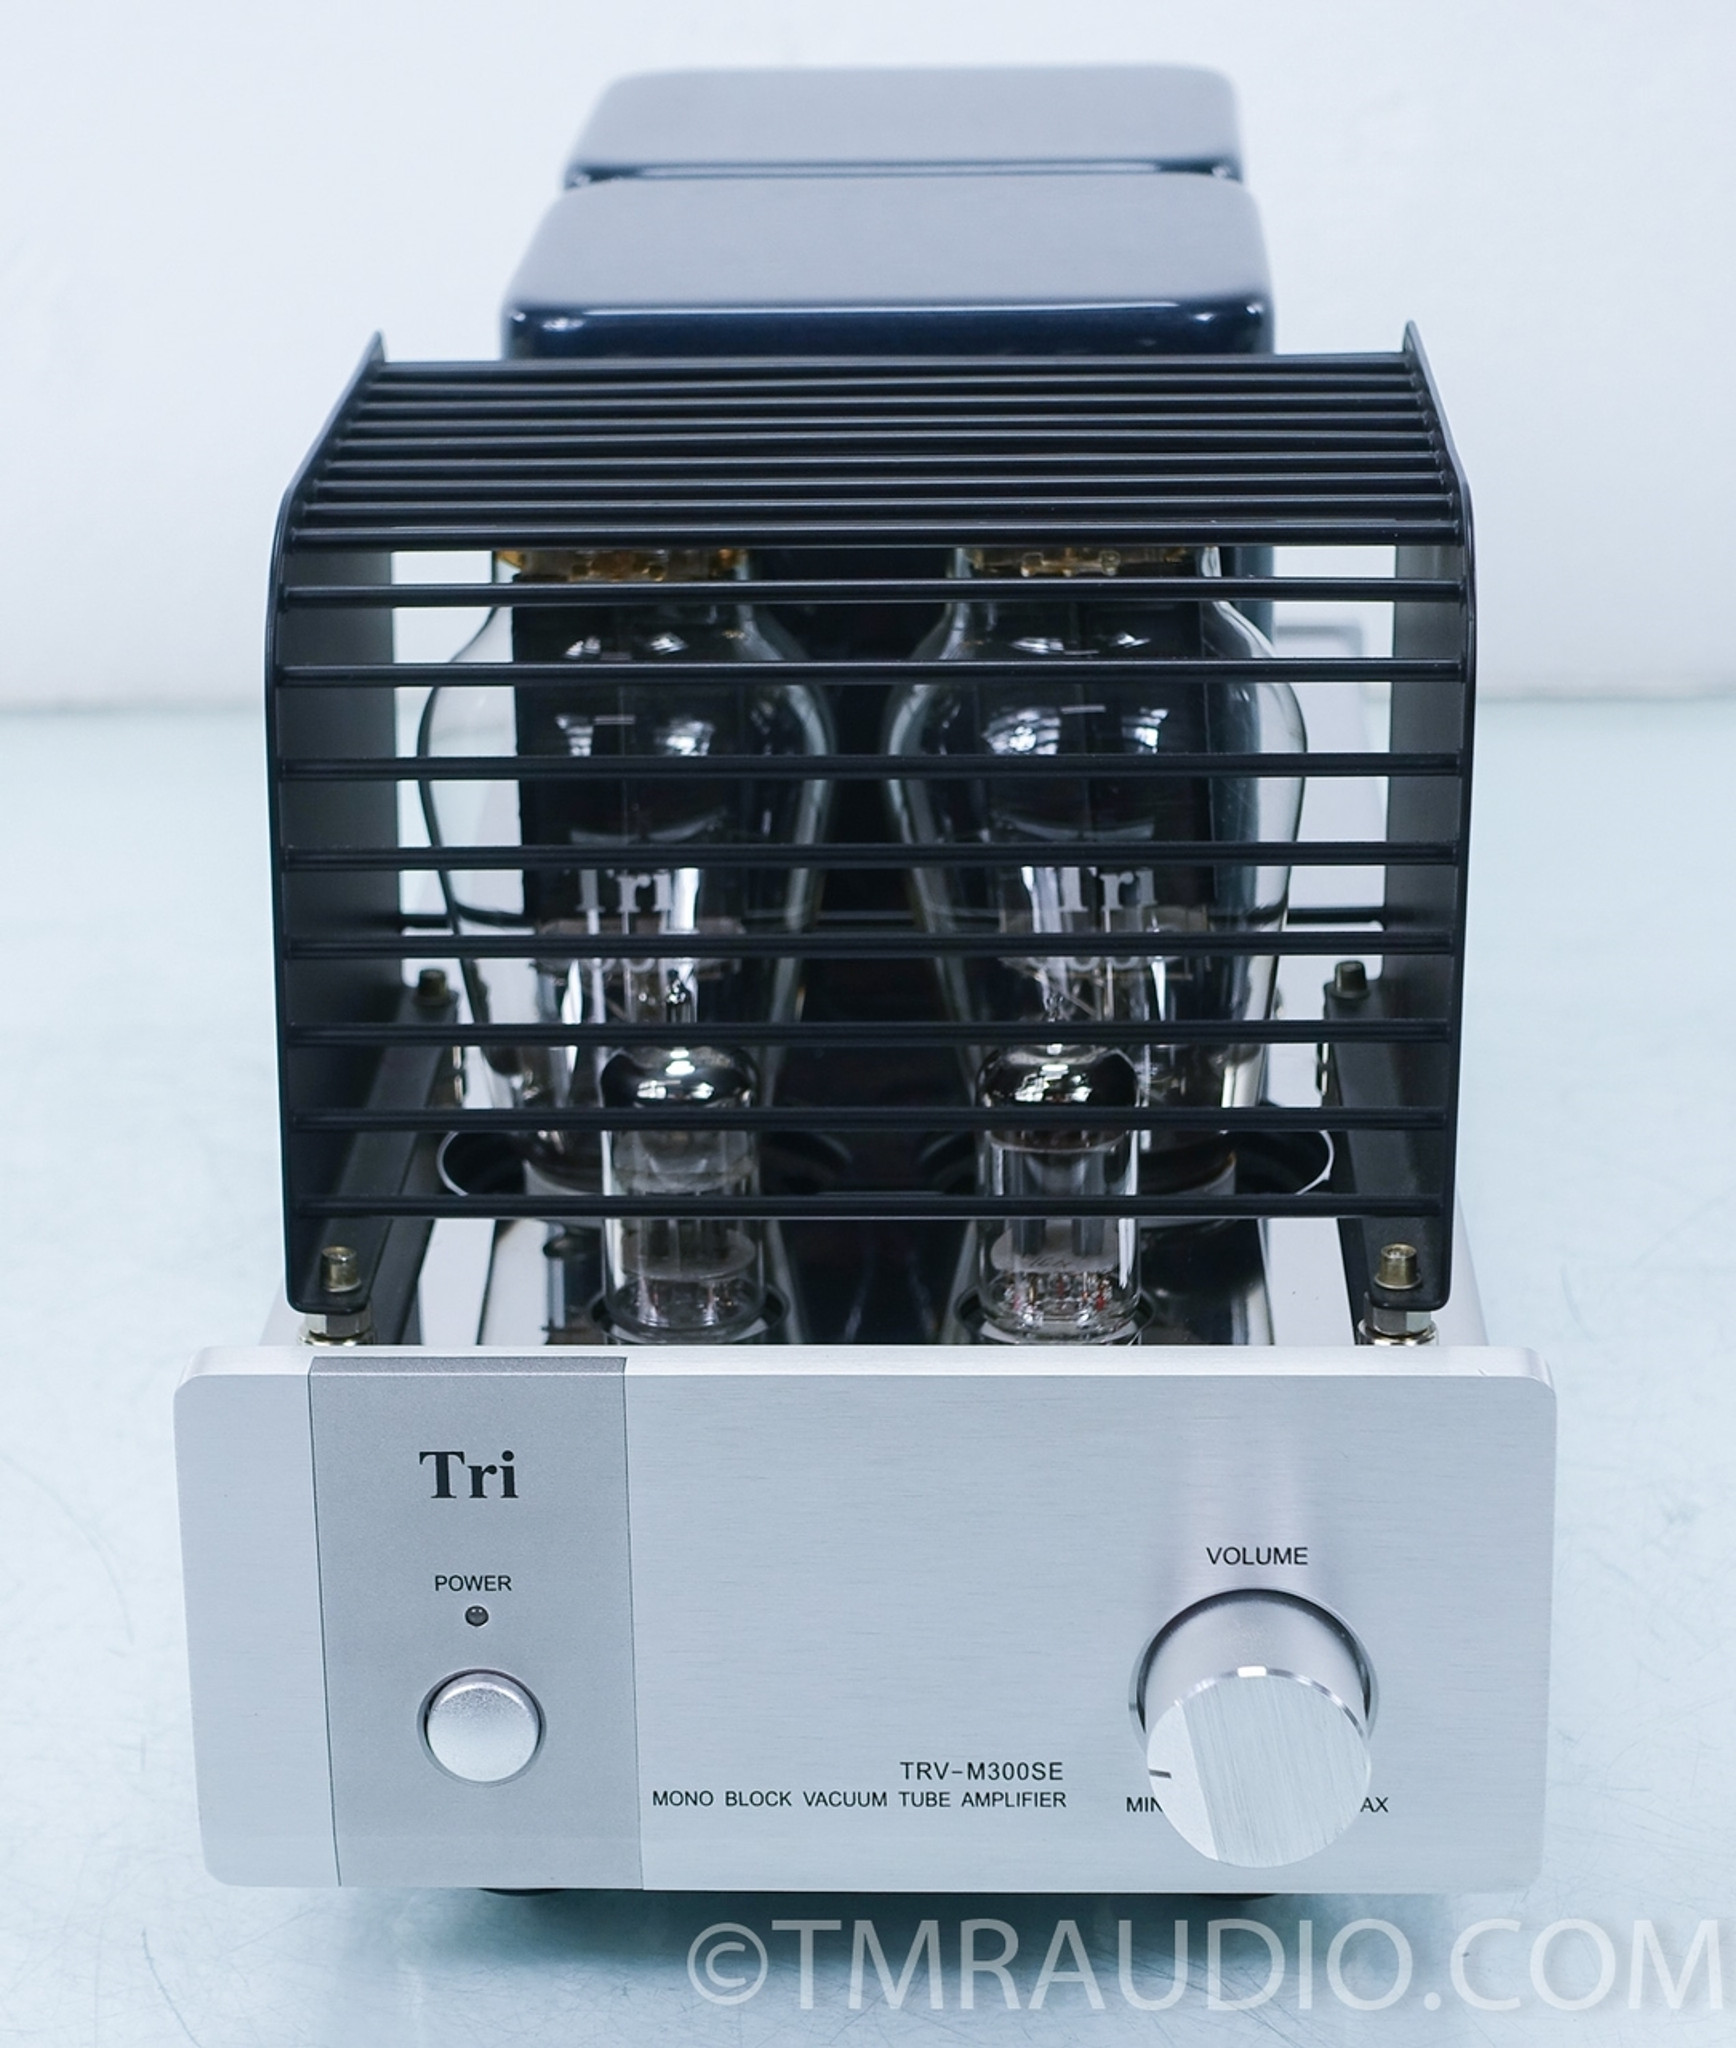 Triode TRV-M300SE Monoblock 300b Tube Amplifiers in Factory Boxes